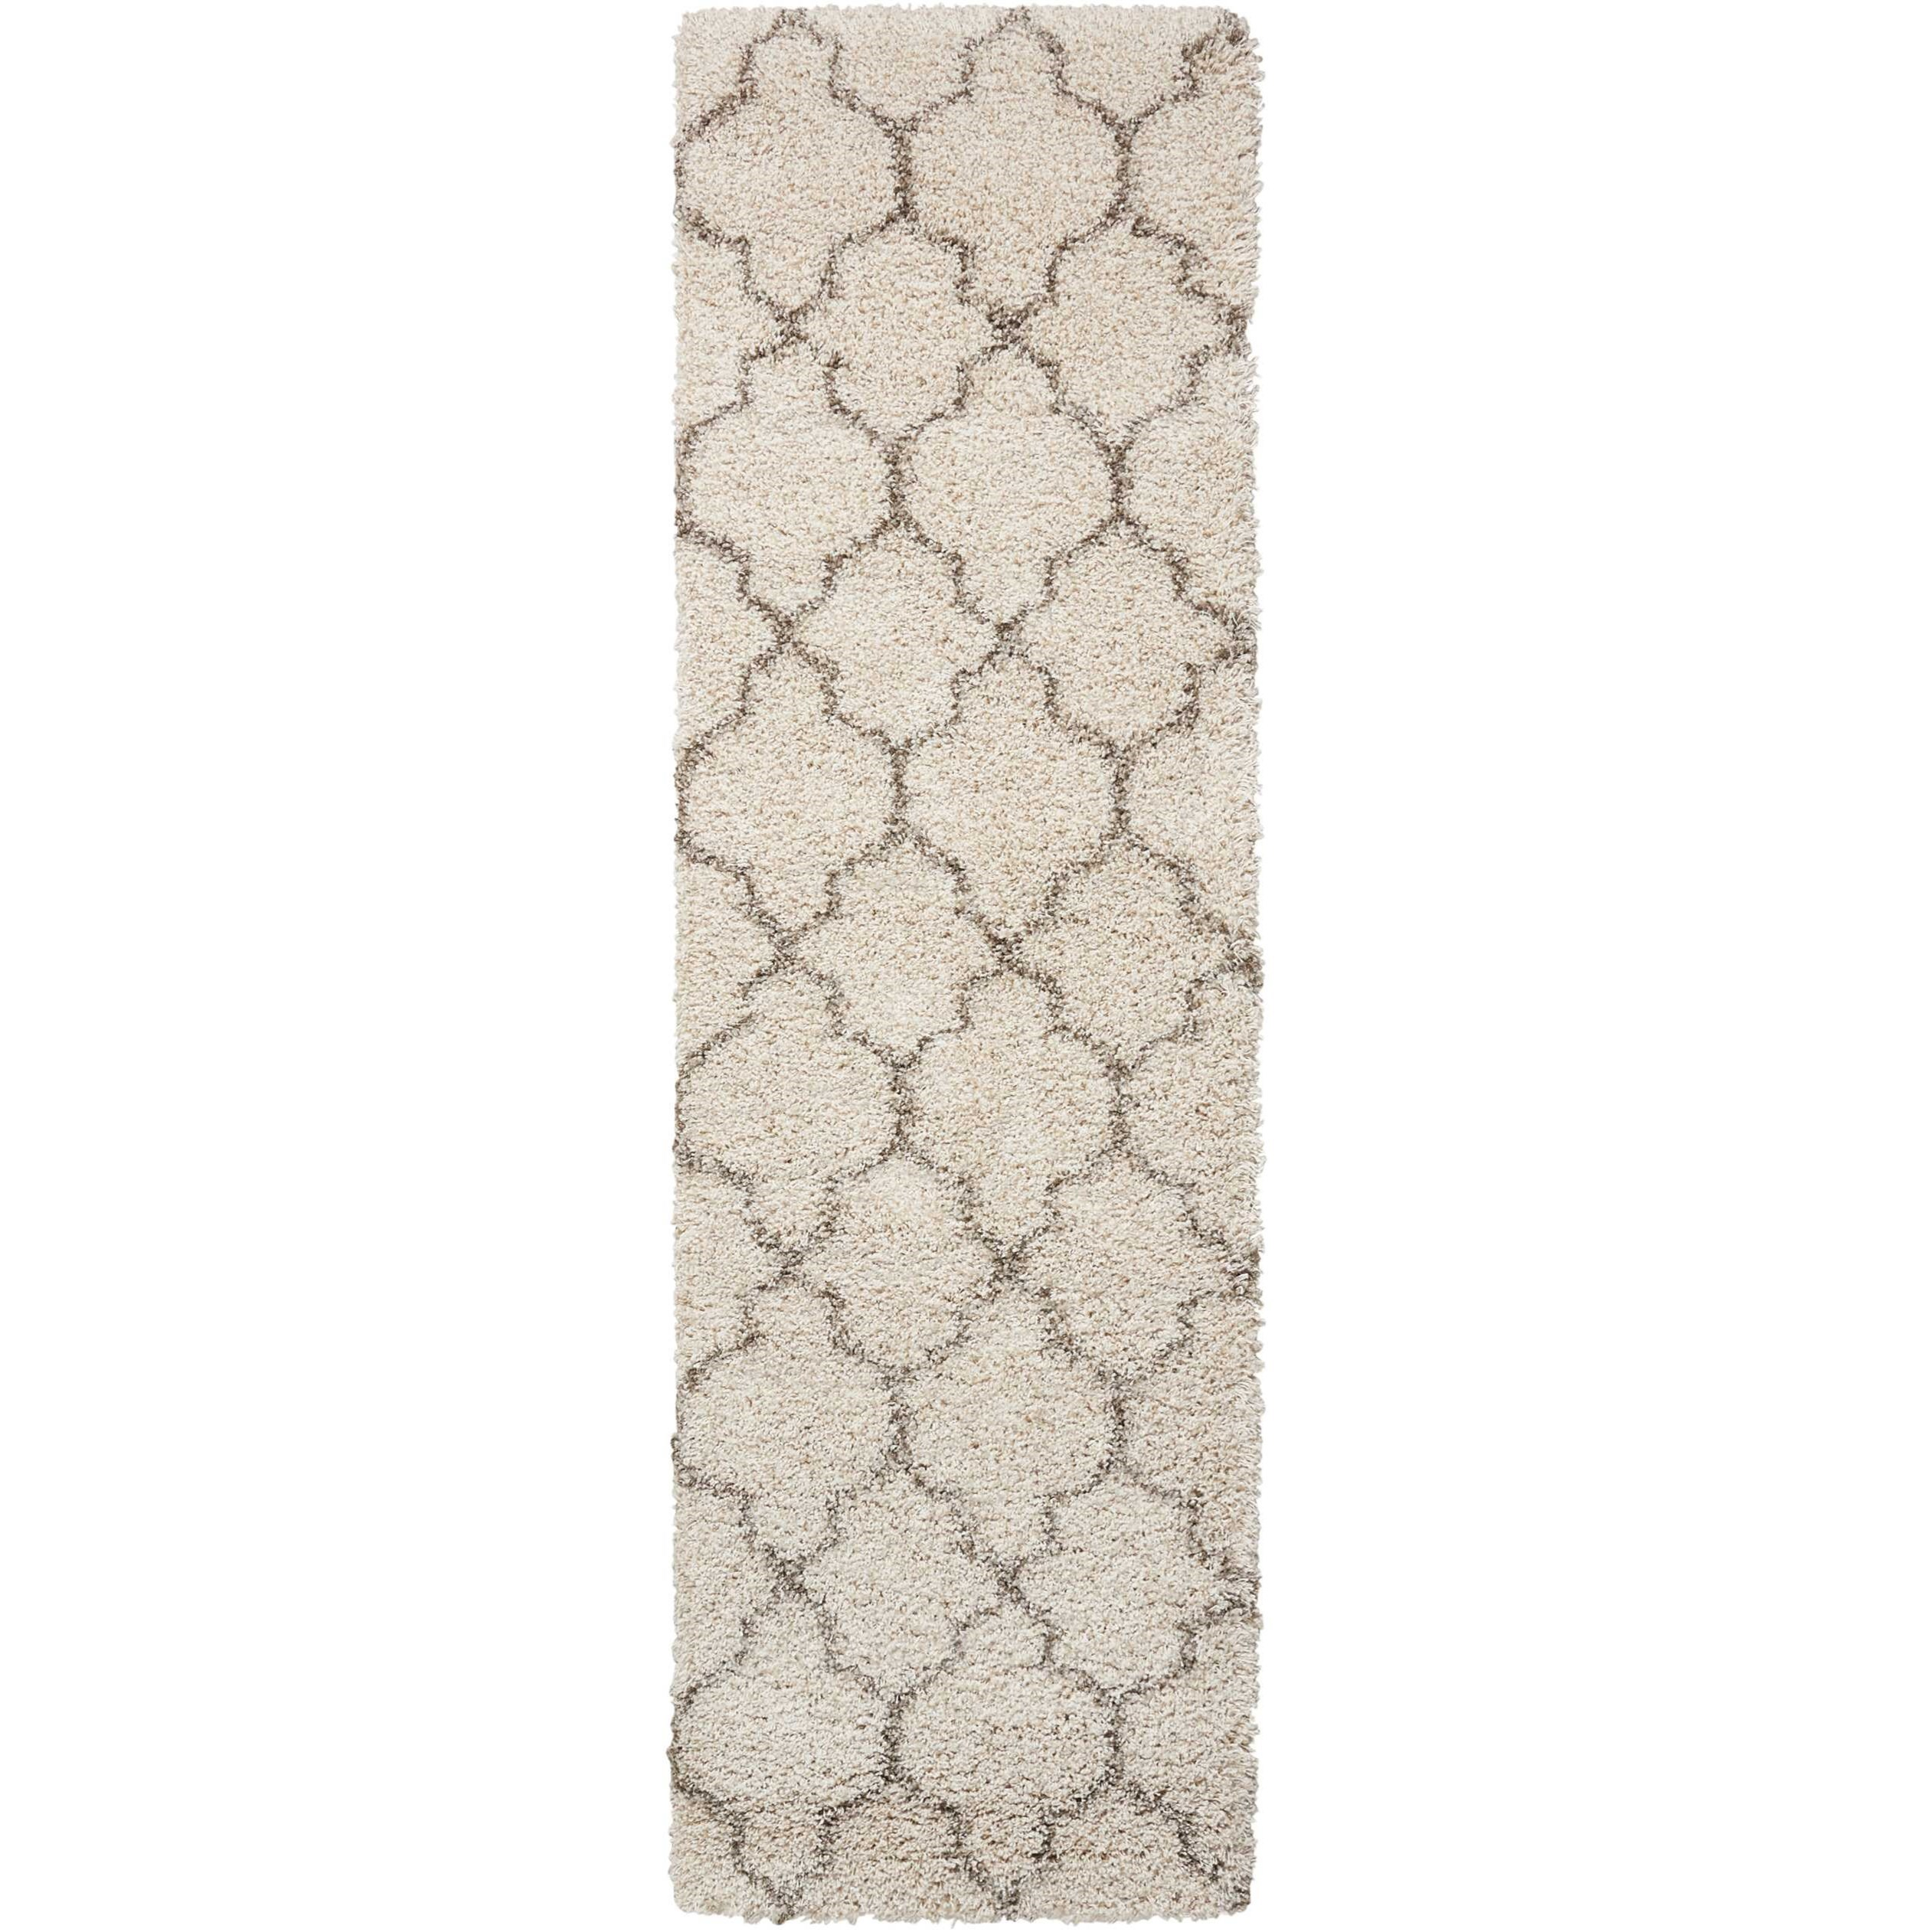 "Amore 2'2"" x 7'6"" Cream Runner Rug by Nourison at Home Collections Furniture"